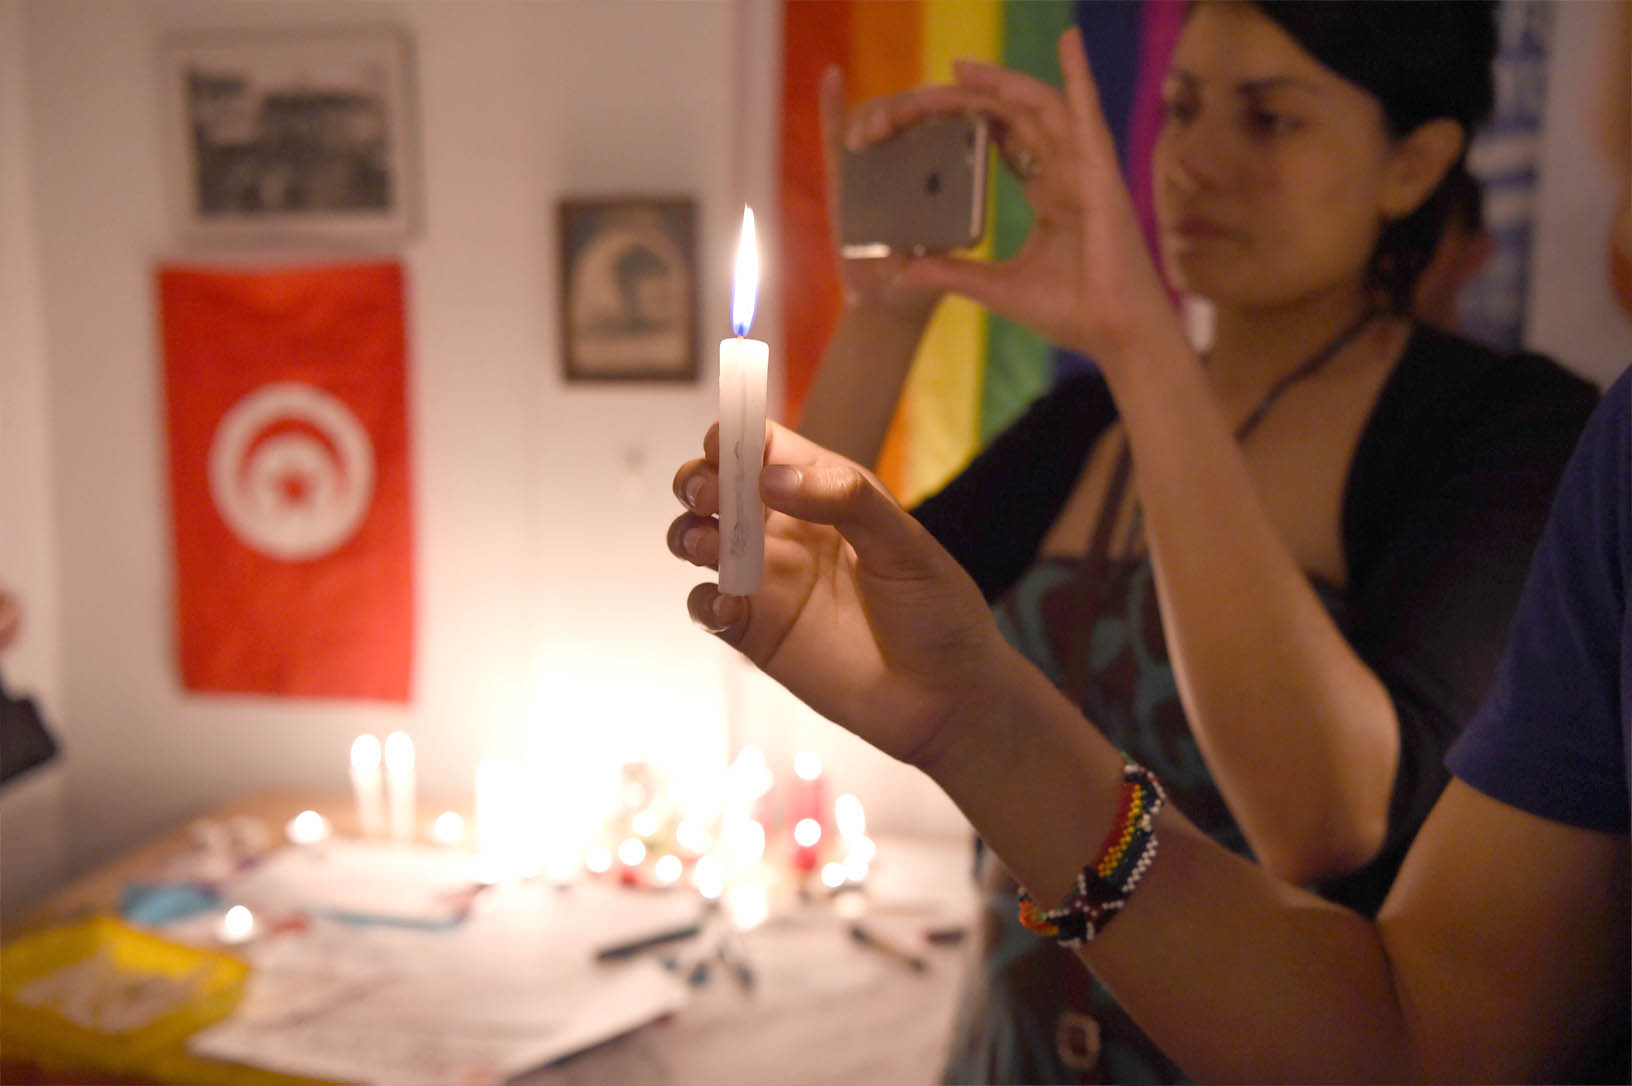 A rainbow flag and a Tunisian national flag hang in the background as activists light candles during an LGBT event in Tunis. (AFP)